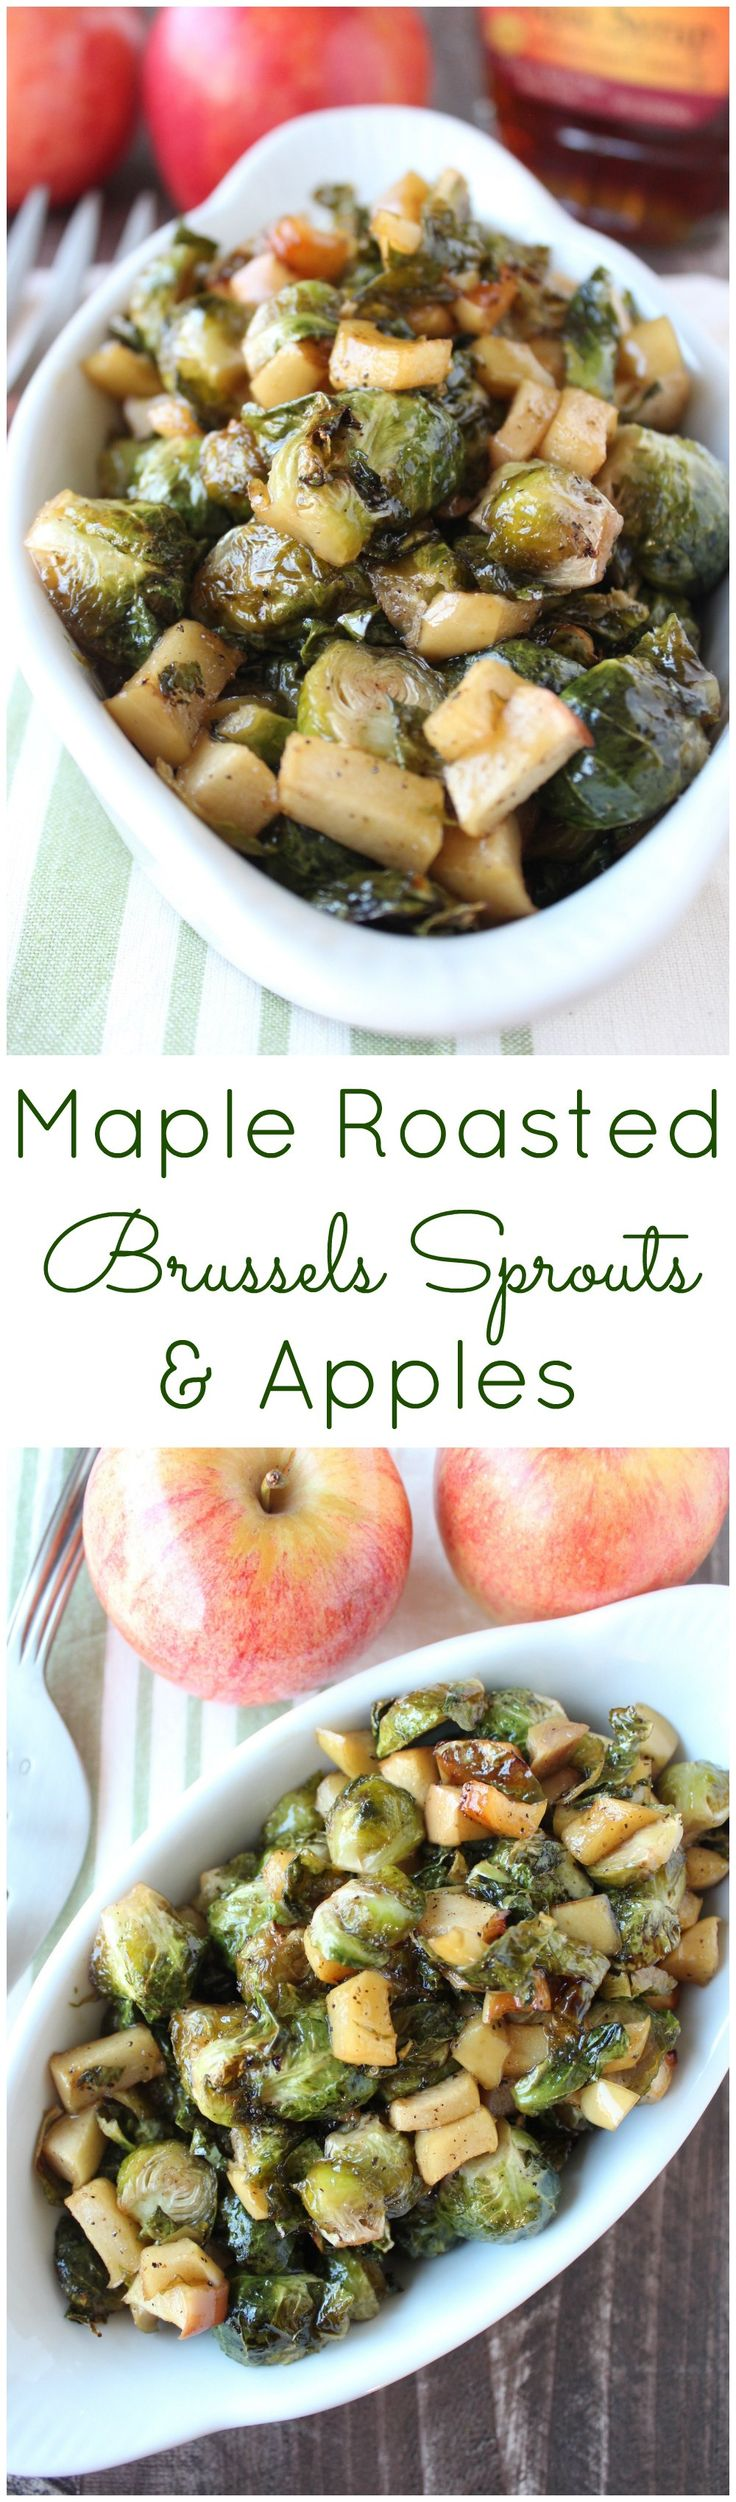 This delectable vegan & gluten free recipe for Maple Roasted Brussel Sprouts & Apples is the perfect side dish for Thanksgiving, Christmas or a fall dinner party! #Vegan #GlutenFree #BrusselsSprouts #Thanksgiving